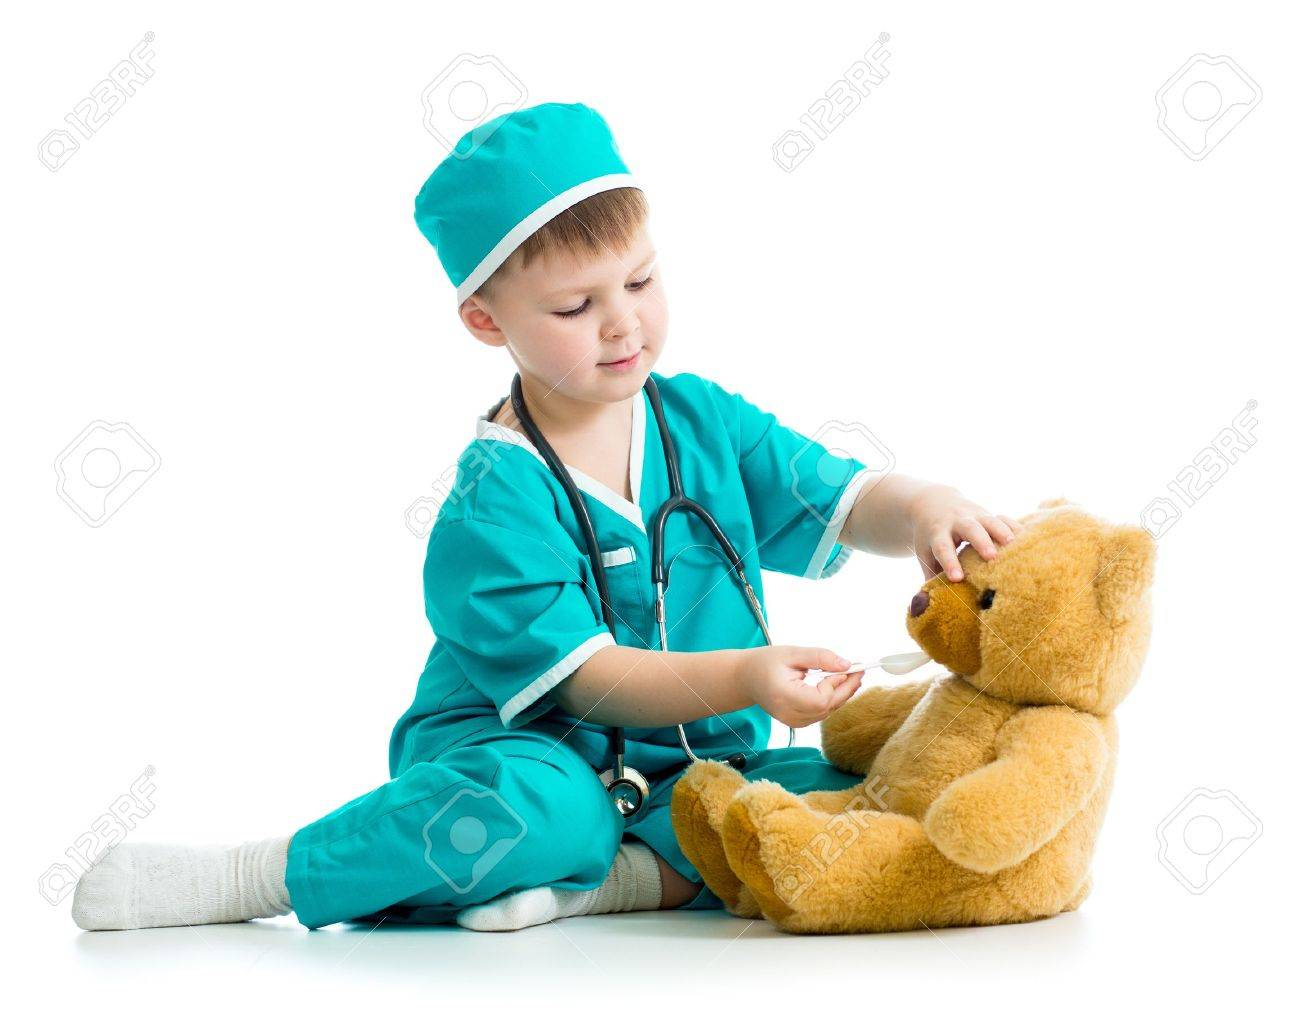 doctor kid Stock Photo - boy kid playing doctor with toy